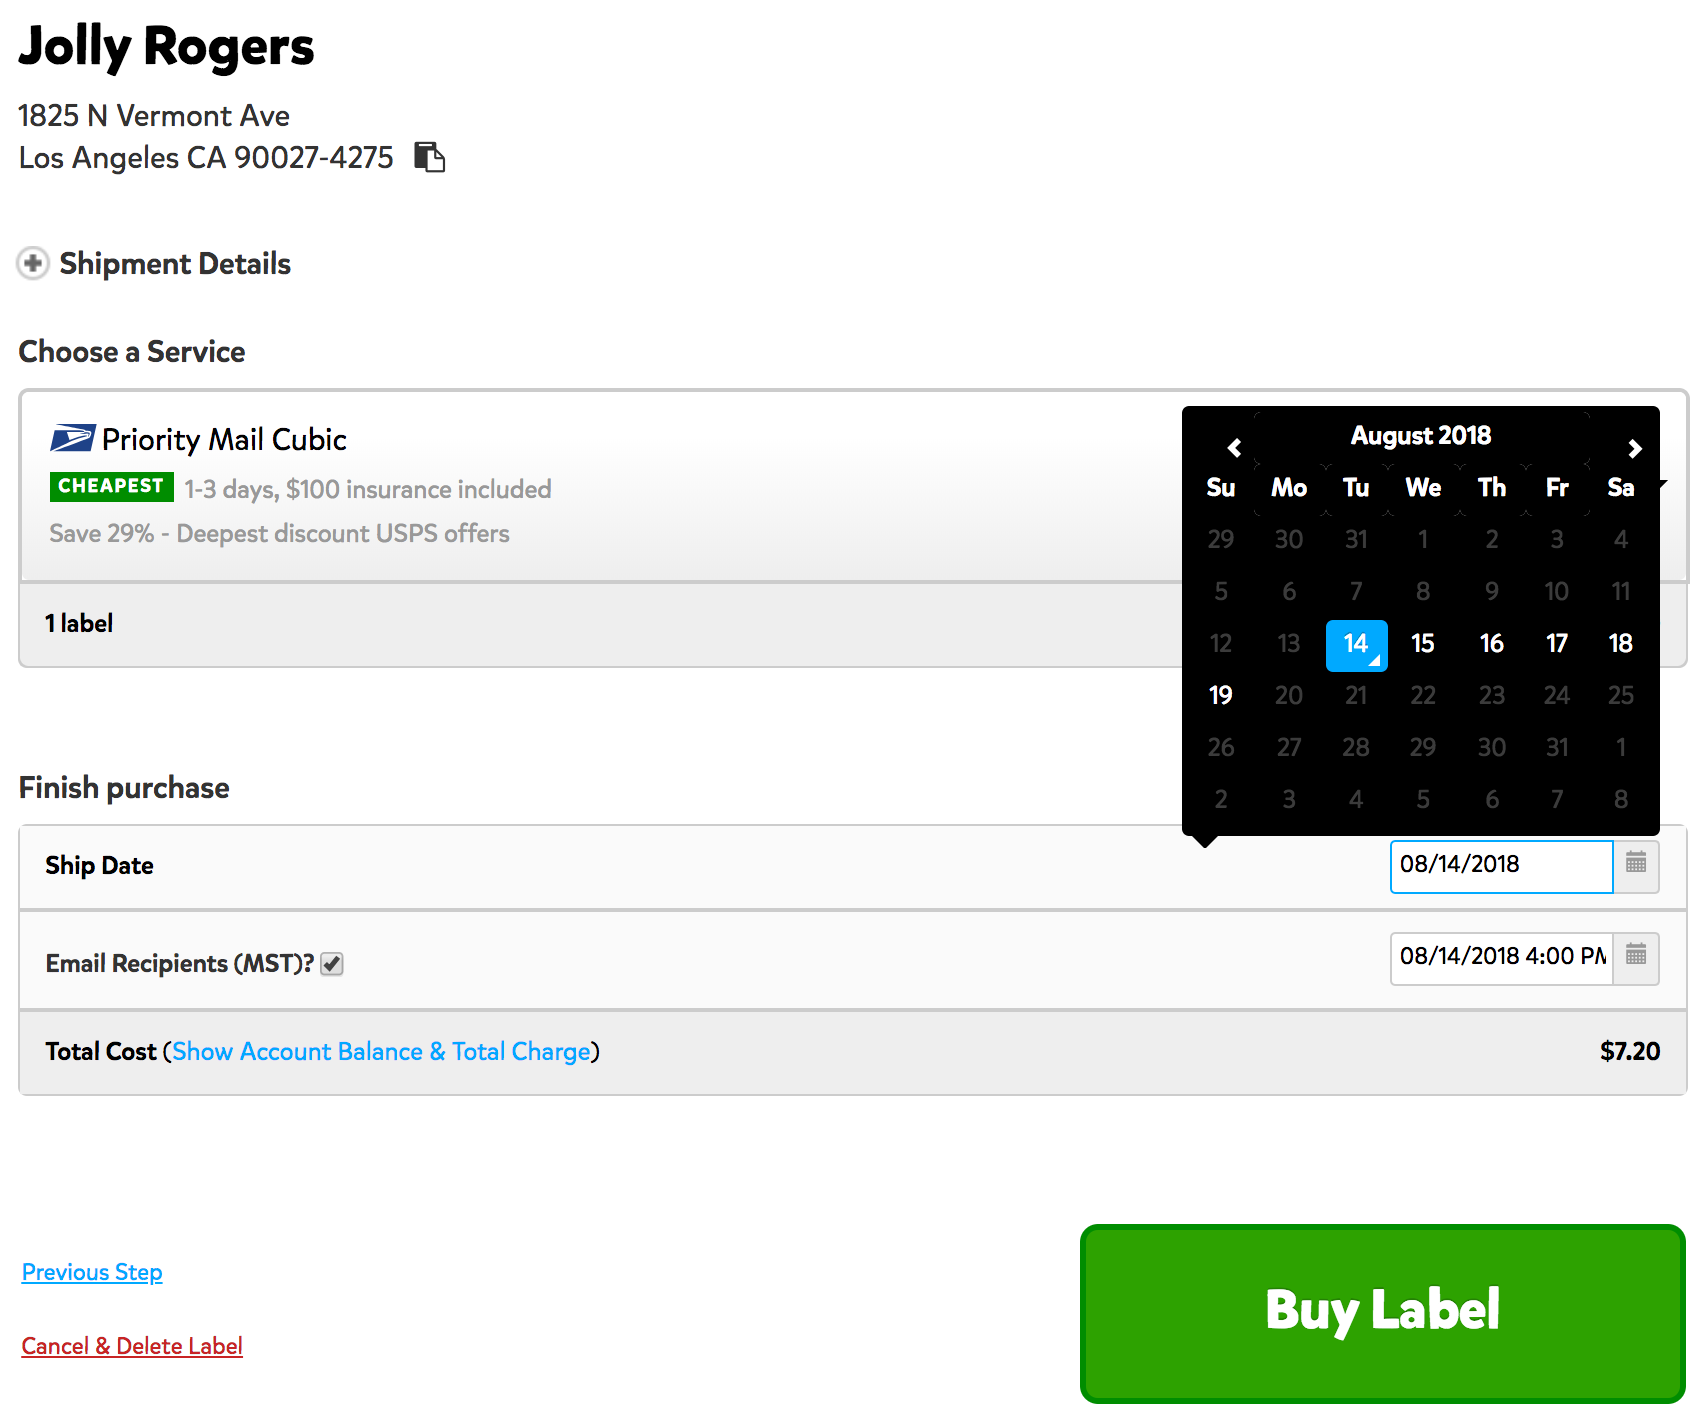 A screenshot showing the shipment details before a label is purchased. Towards the bottom of the page above the 'Buy Label' button, there's a line for Ship Date, and to the right of that there's a box where you can select the Ship Date up to 7 days in the future.